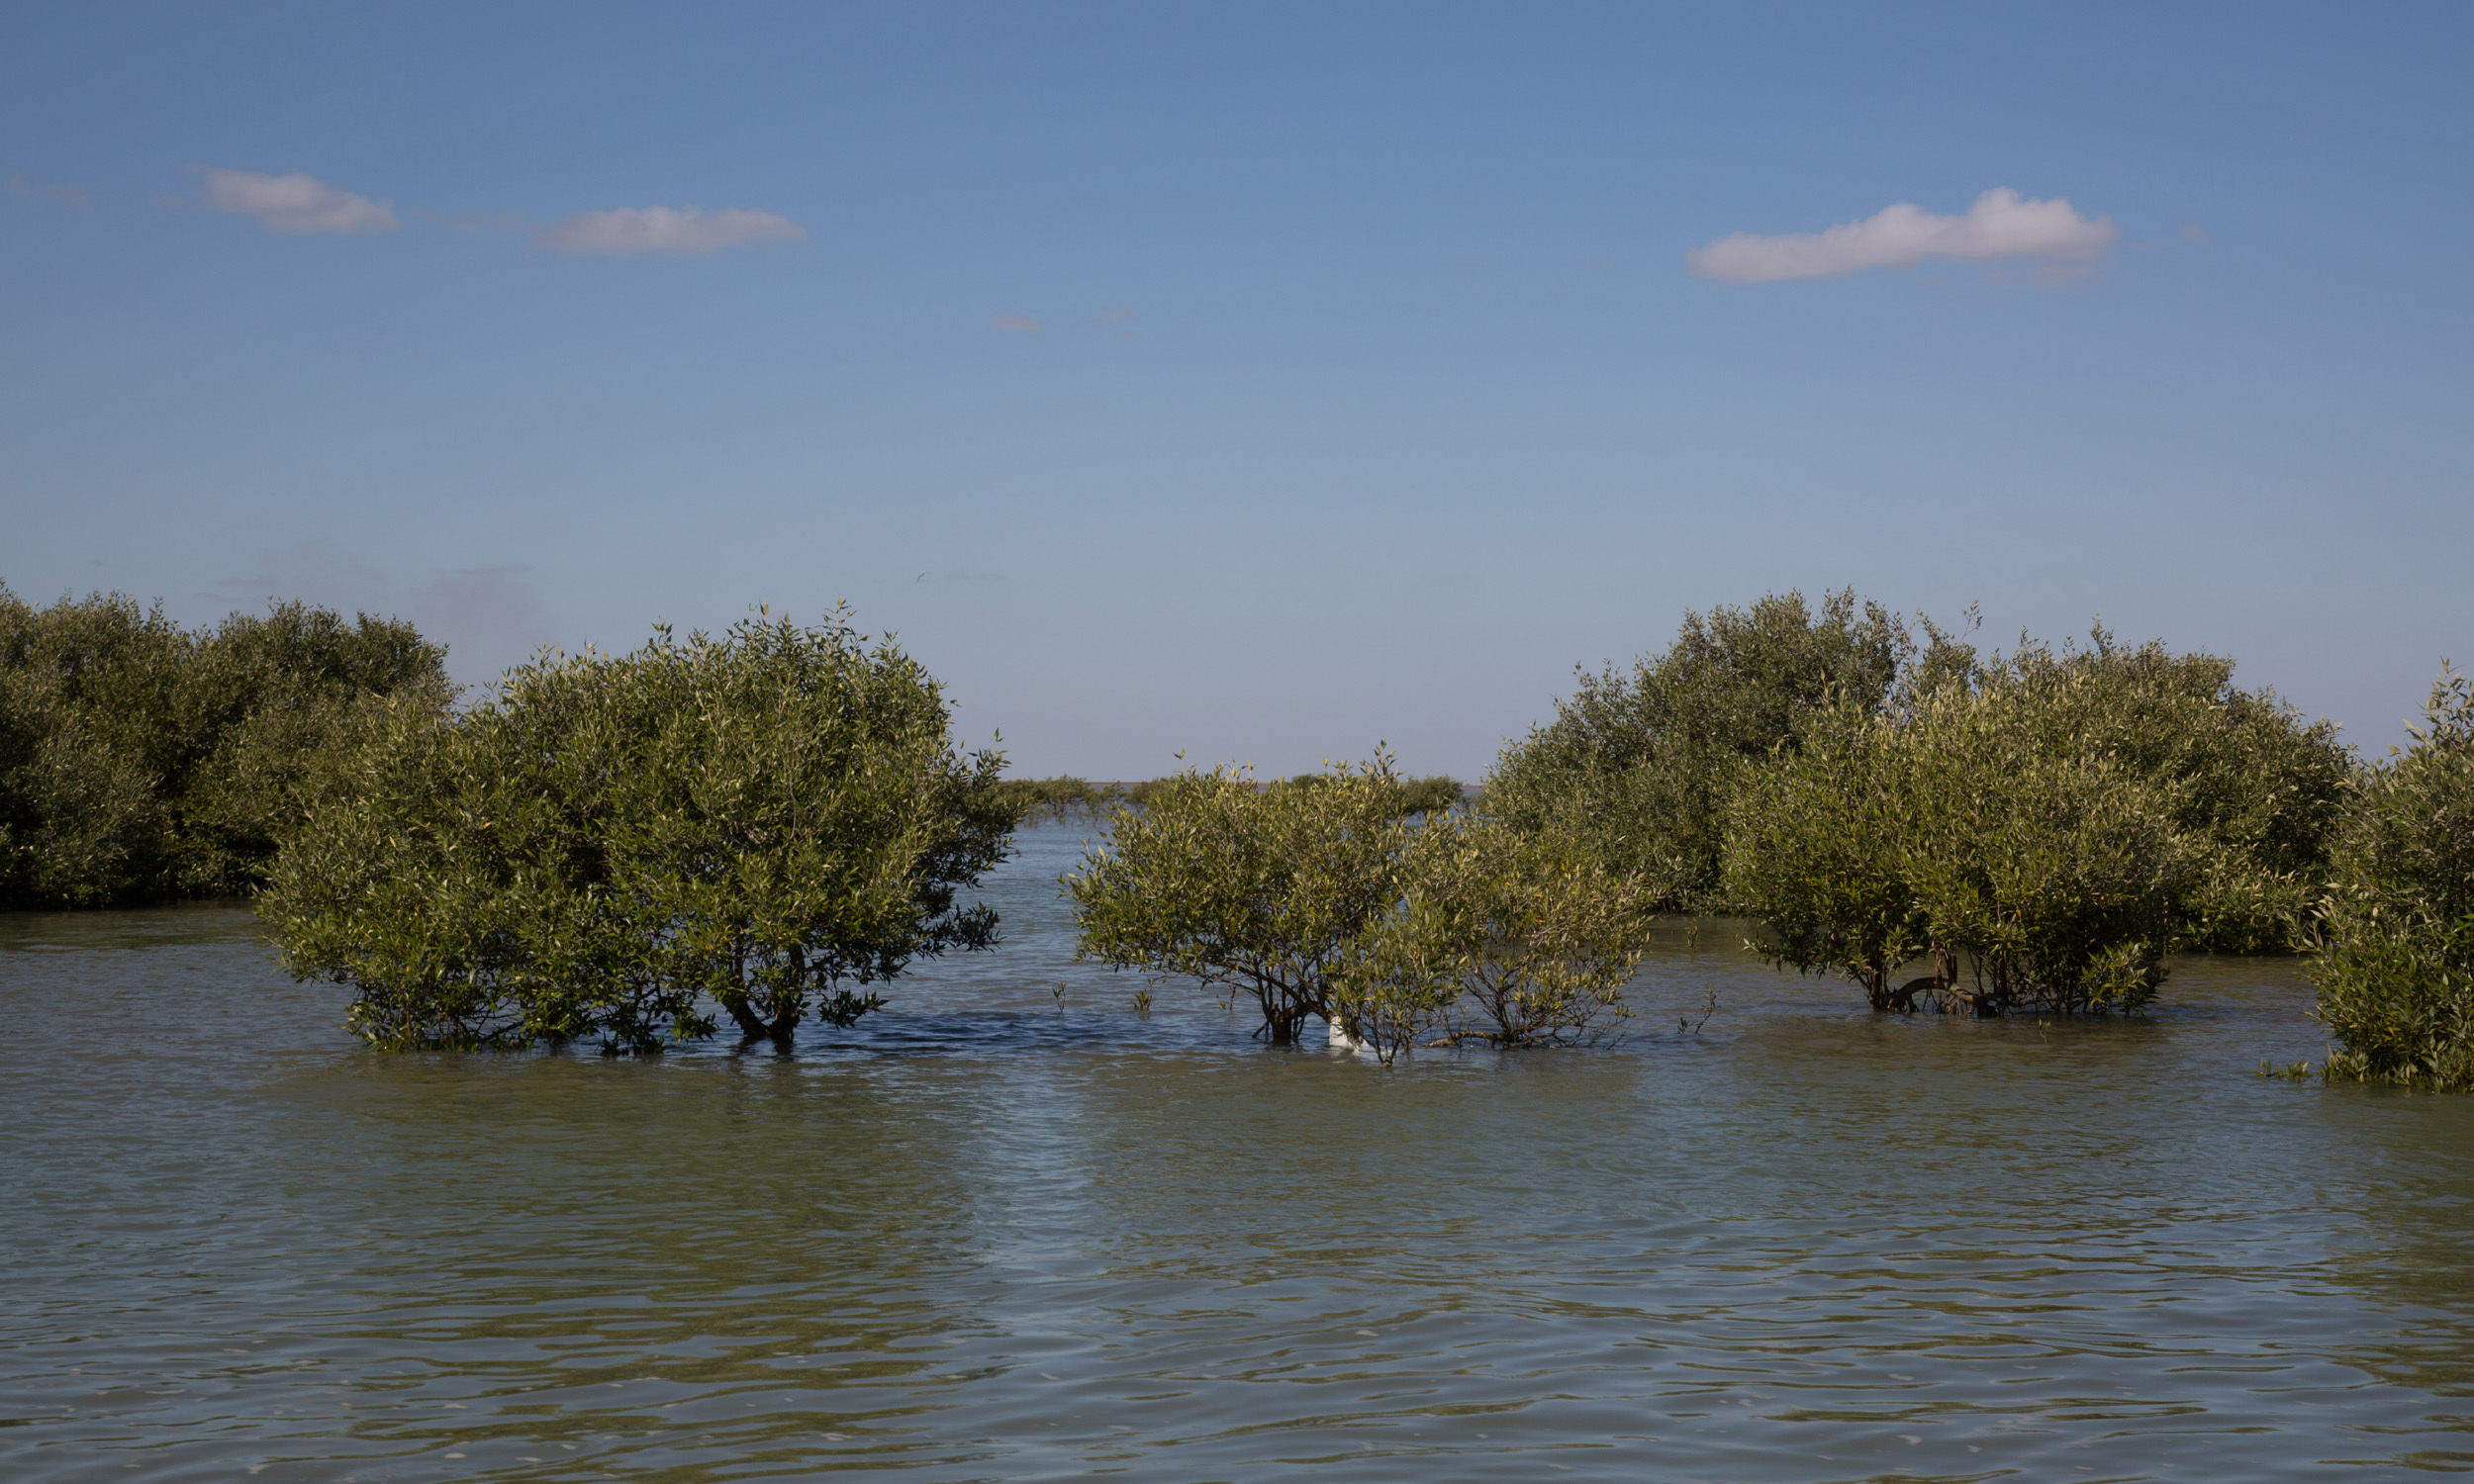 The Mangroves of the Arabian Sea